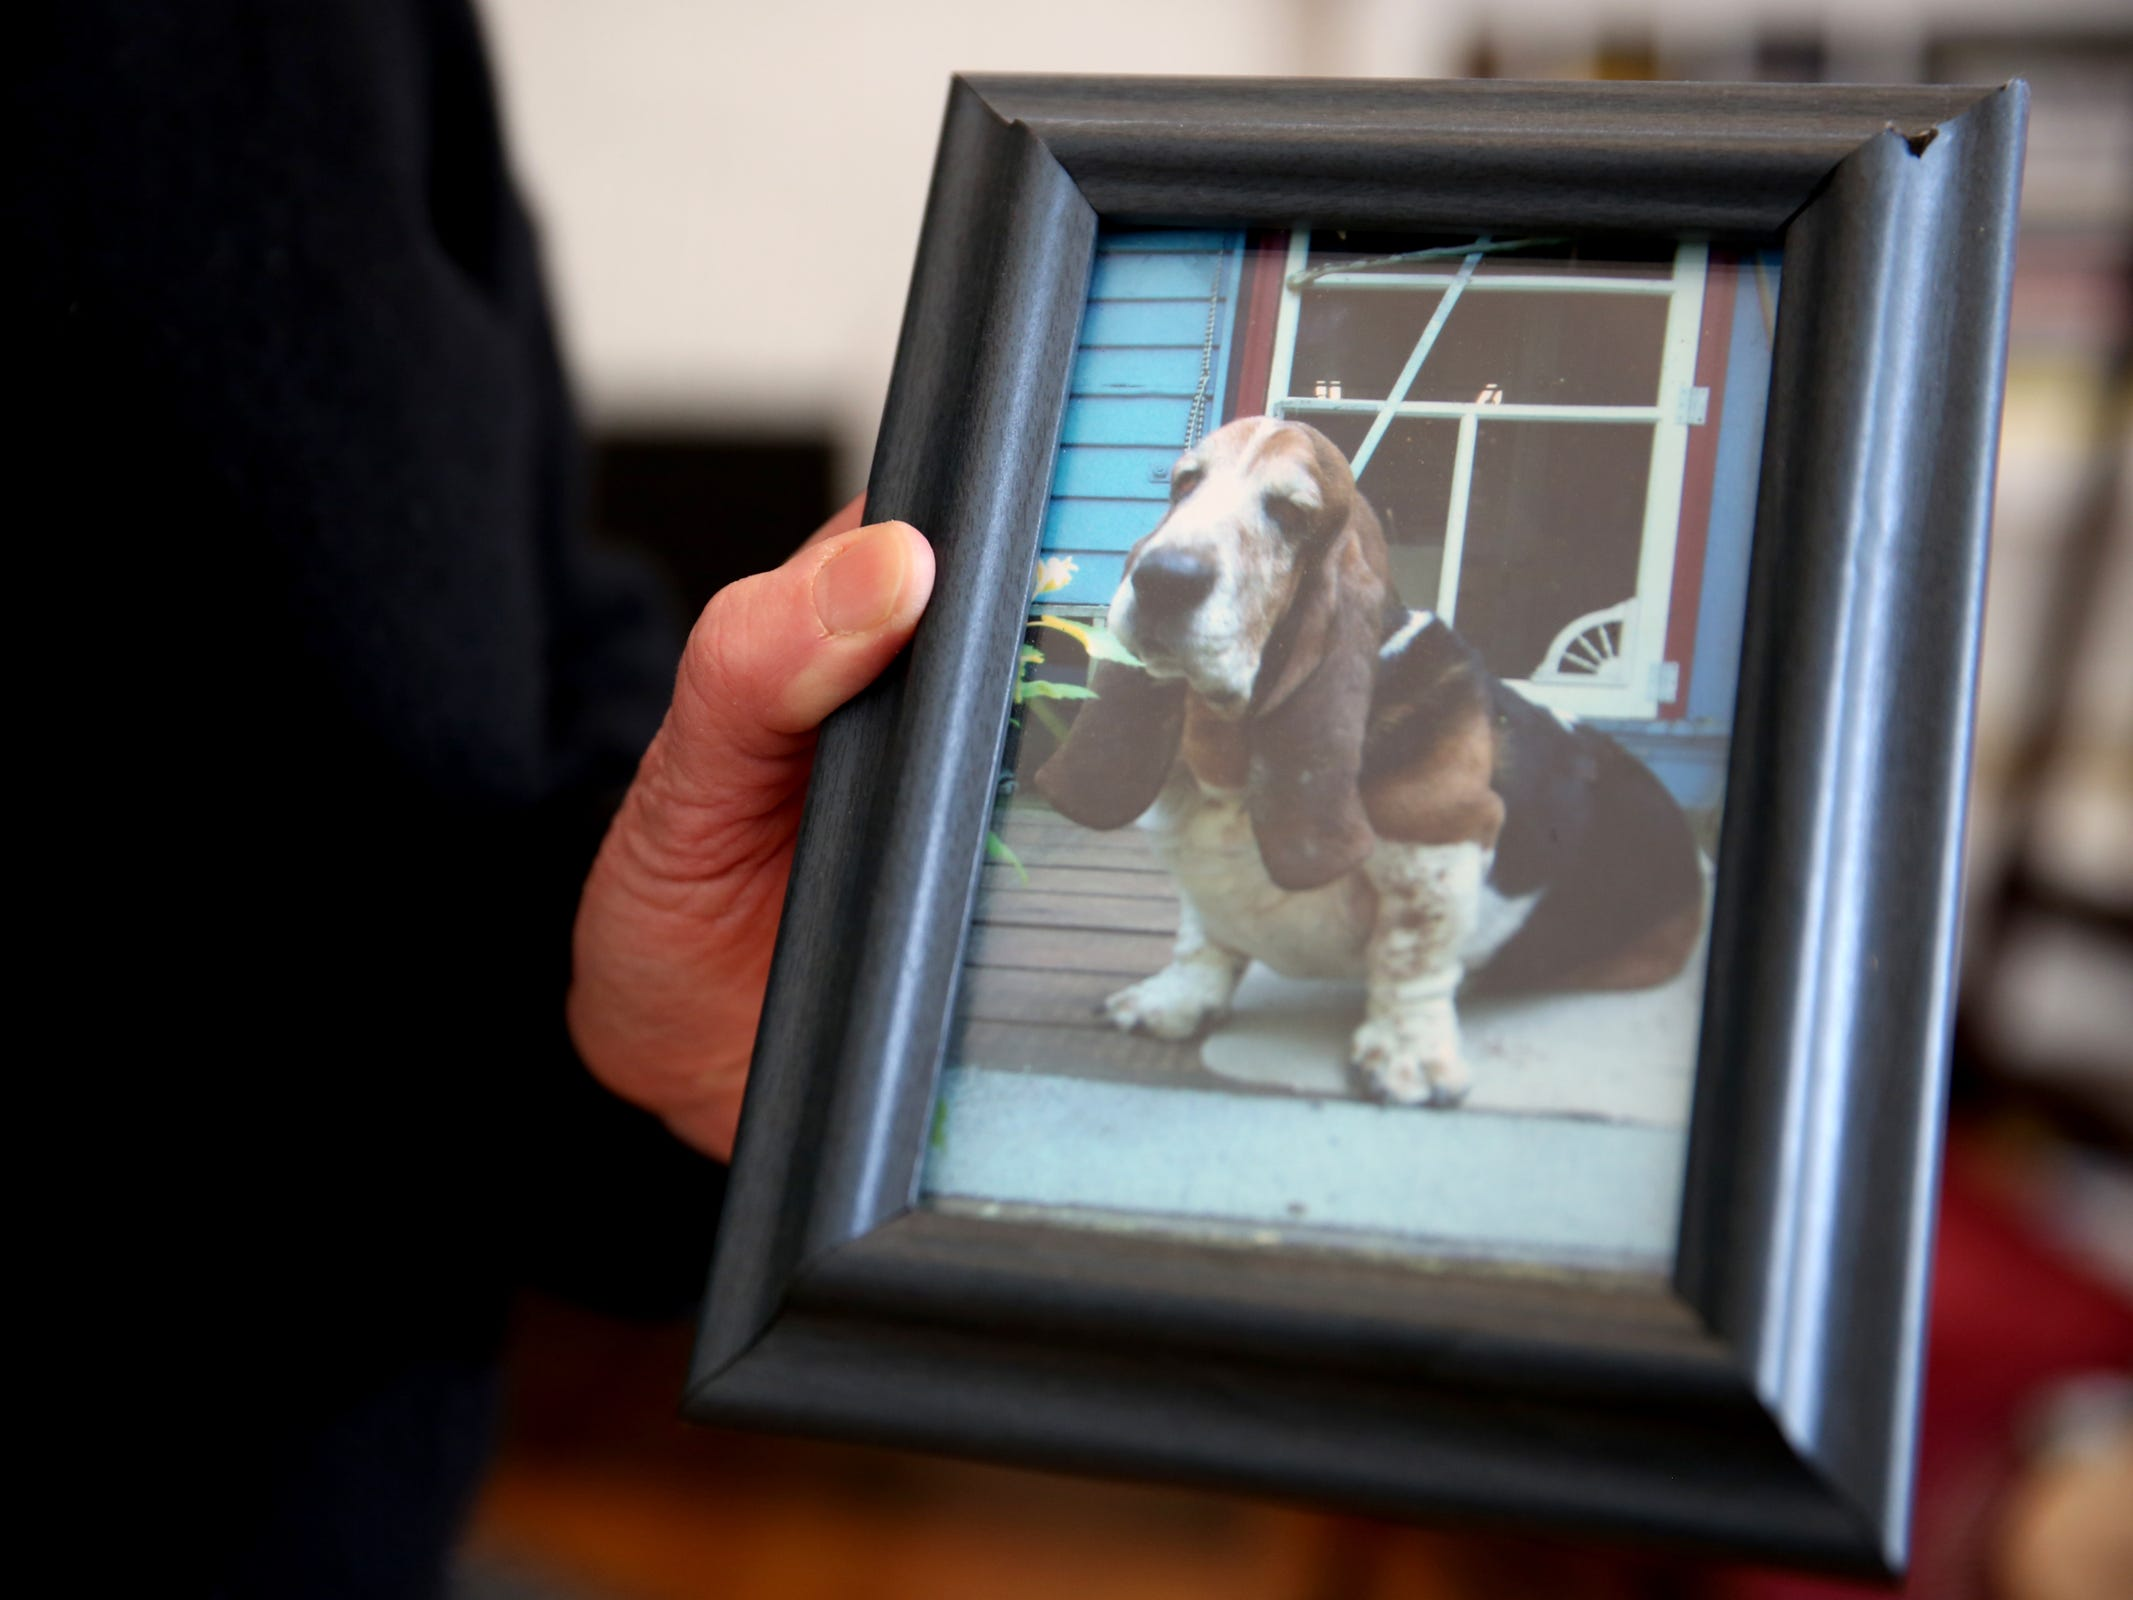 Jean Brougher holds a photo of her basset hound, Clifford, who died several years ago. She will travel and volunteer at an animal shelter near Paradise, California following wildfires. Photographed at Brougher's home in Salem on Friday, Dec. 14, 2018.